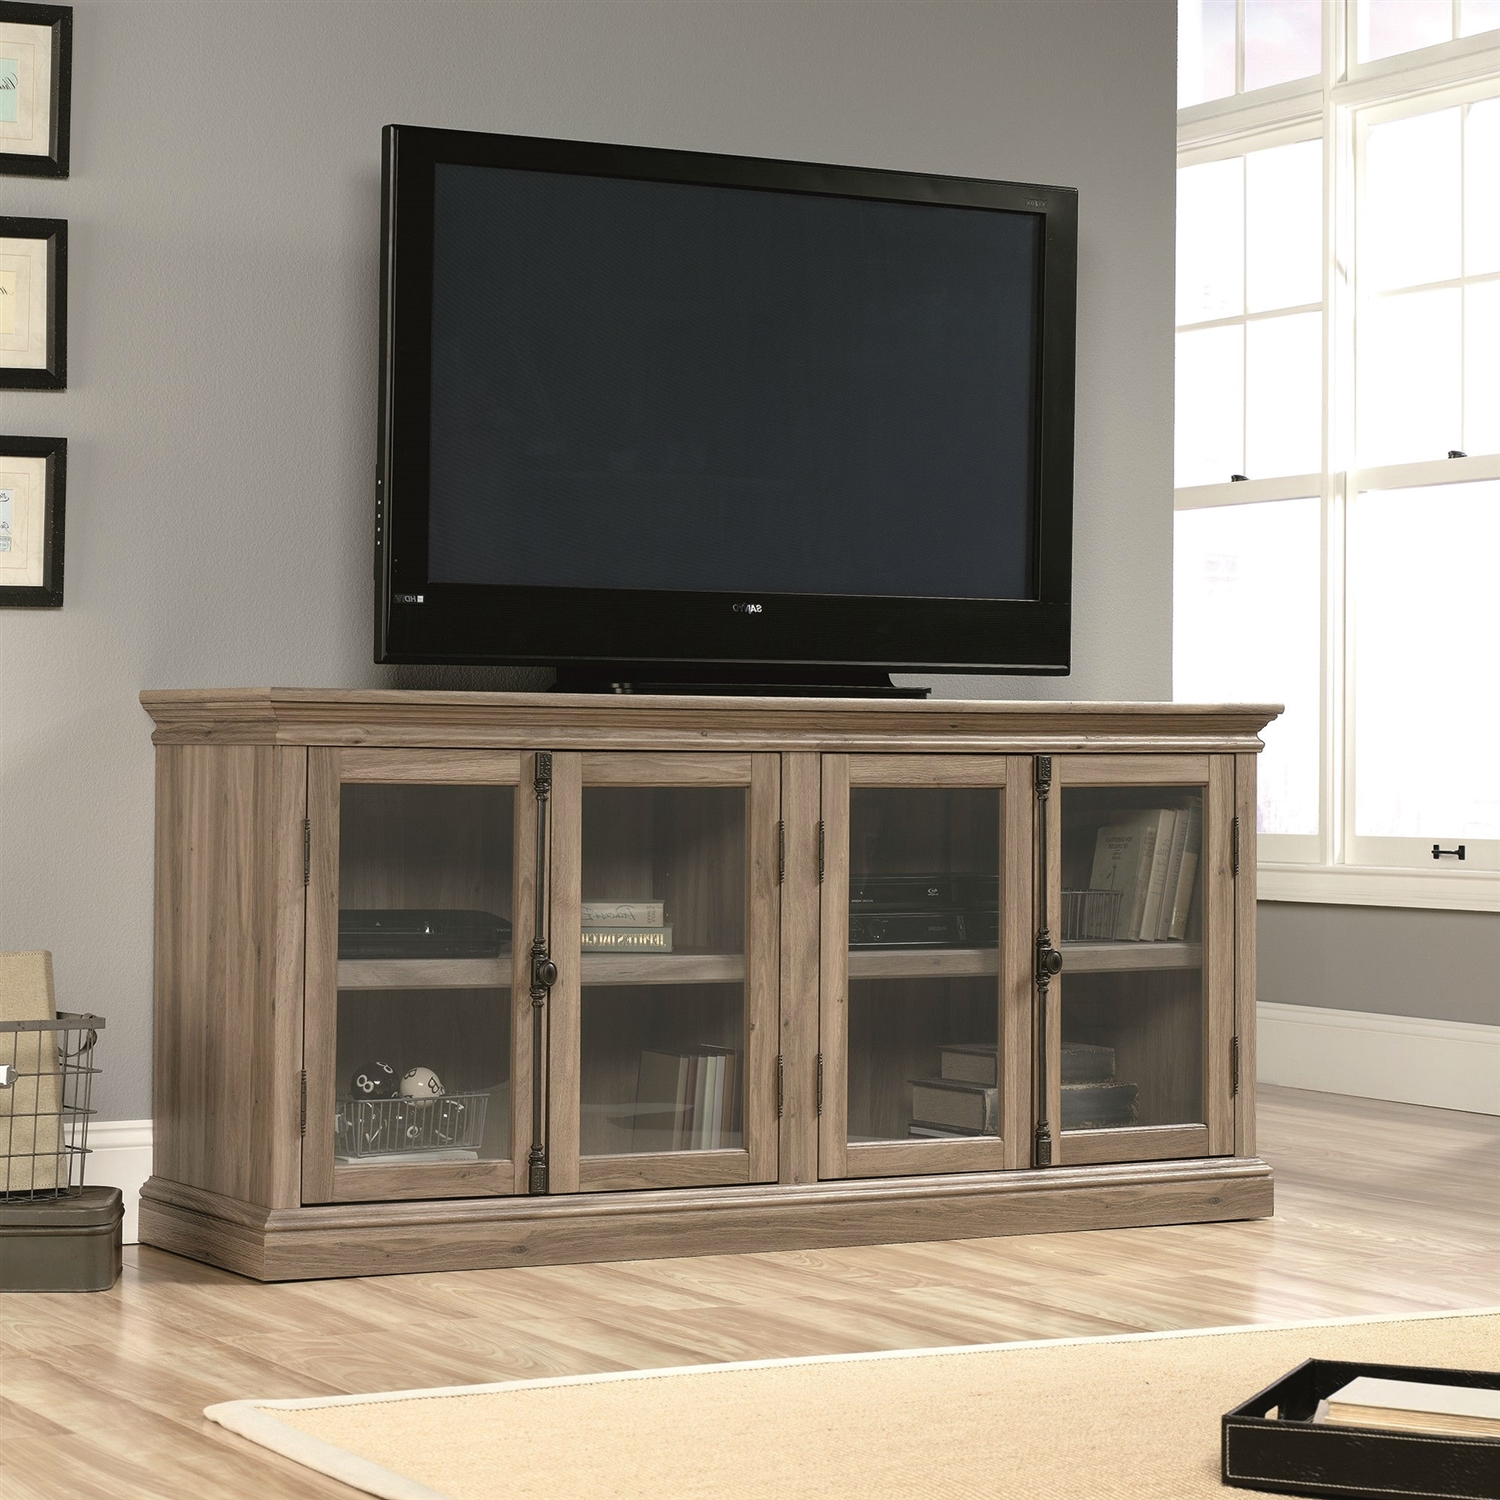 Salt Oak Wood Finish TV Stand With Tempered Glass Doors  Fits Up To 80 Tv Stand 80 Inches Wide41